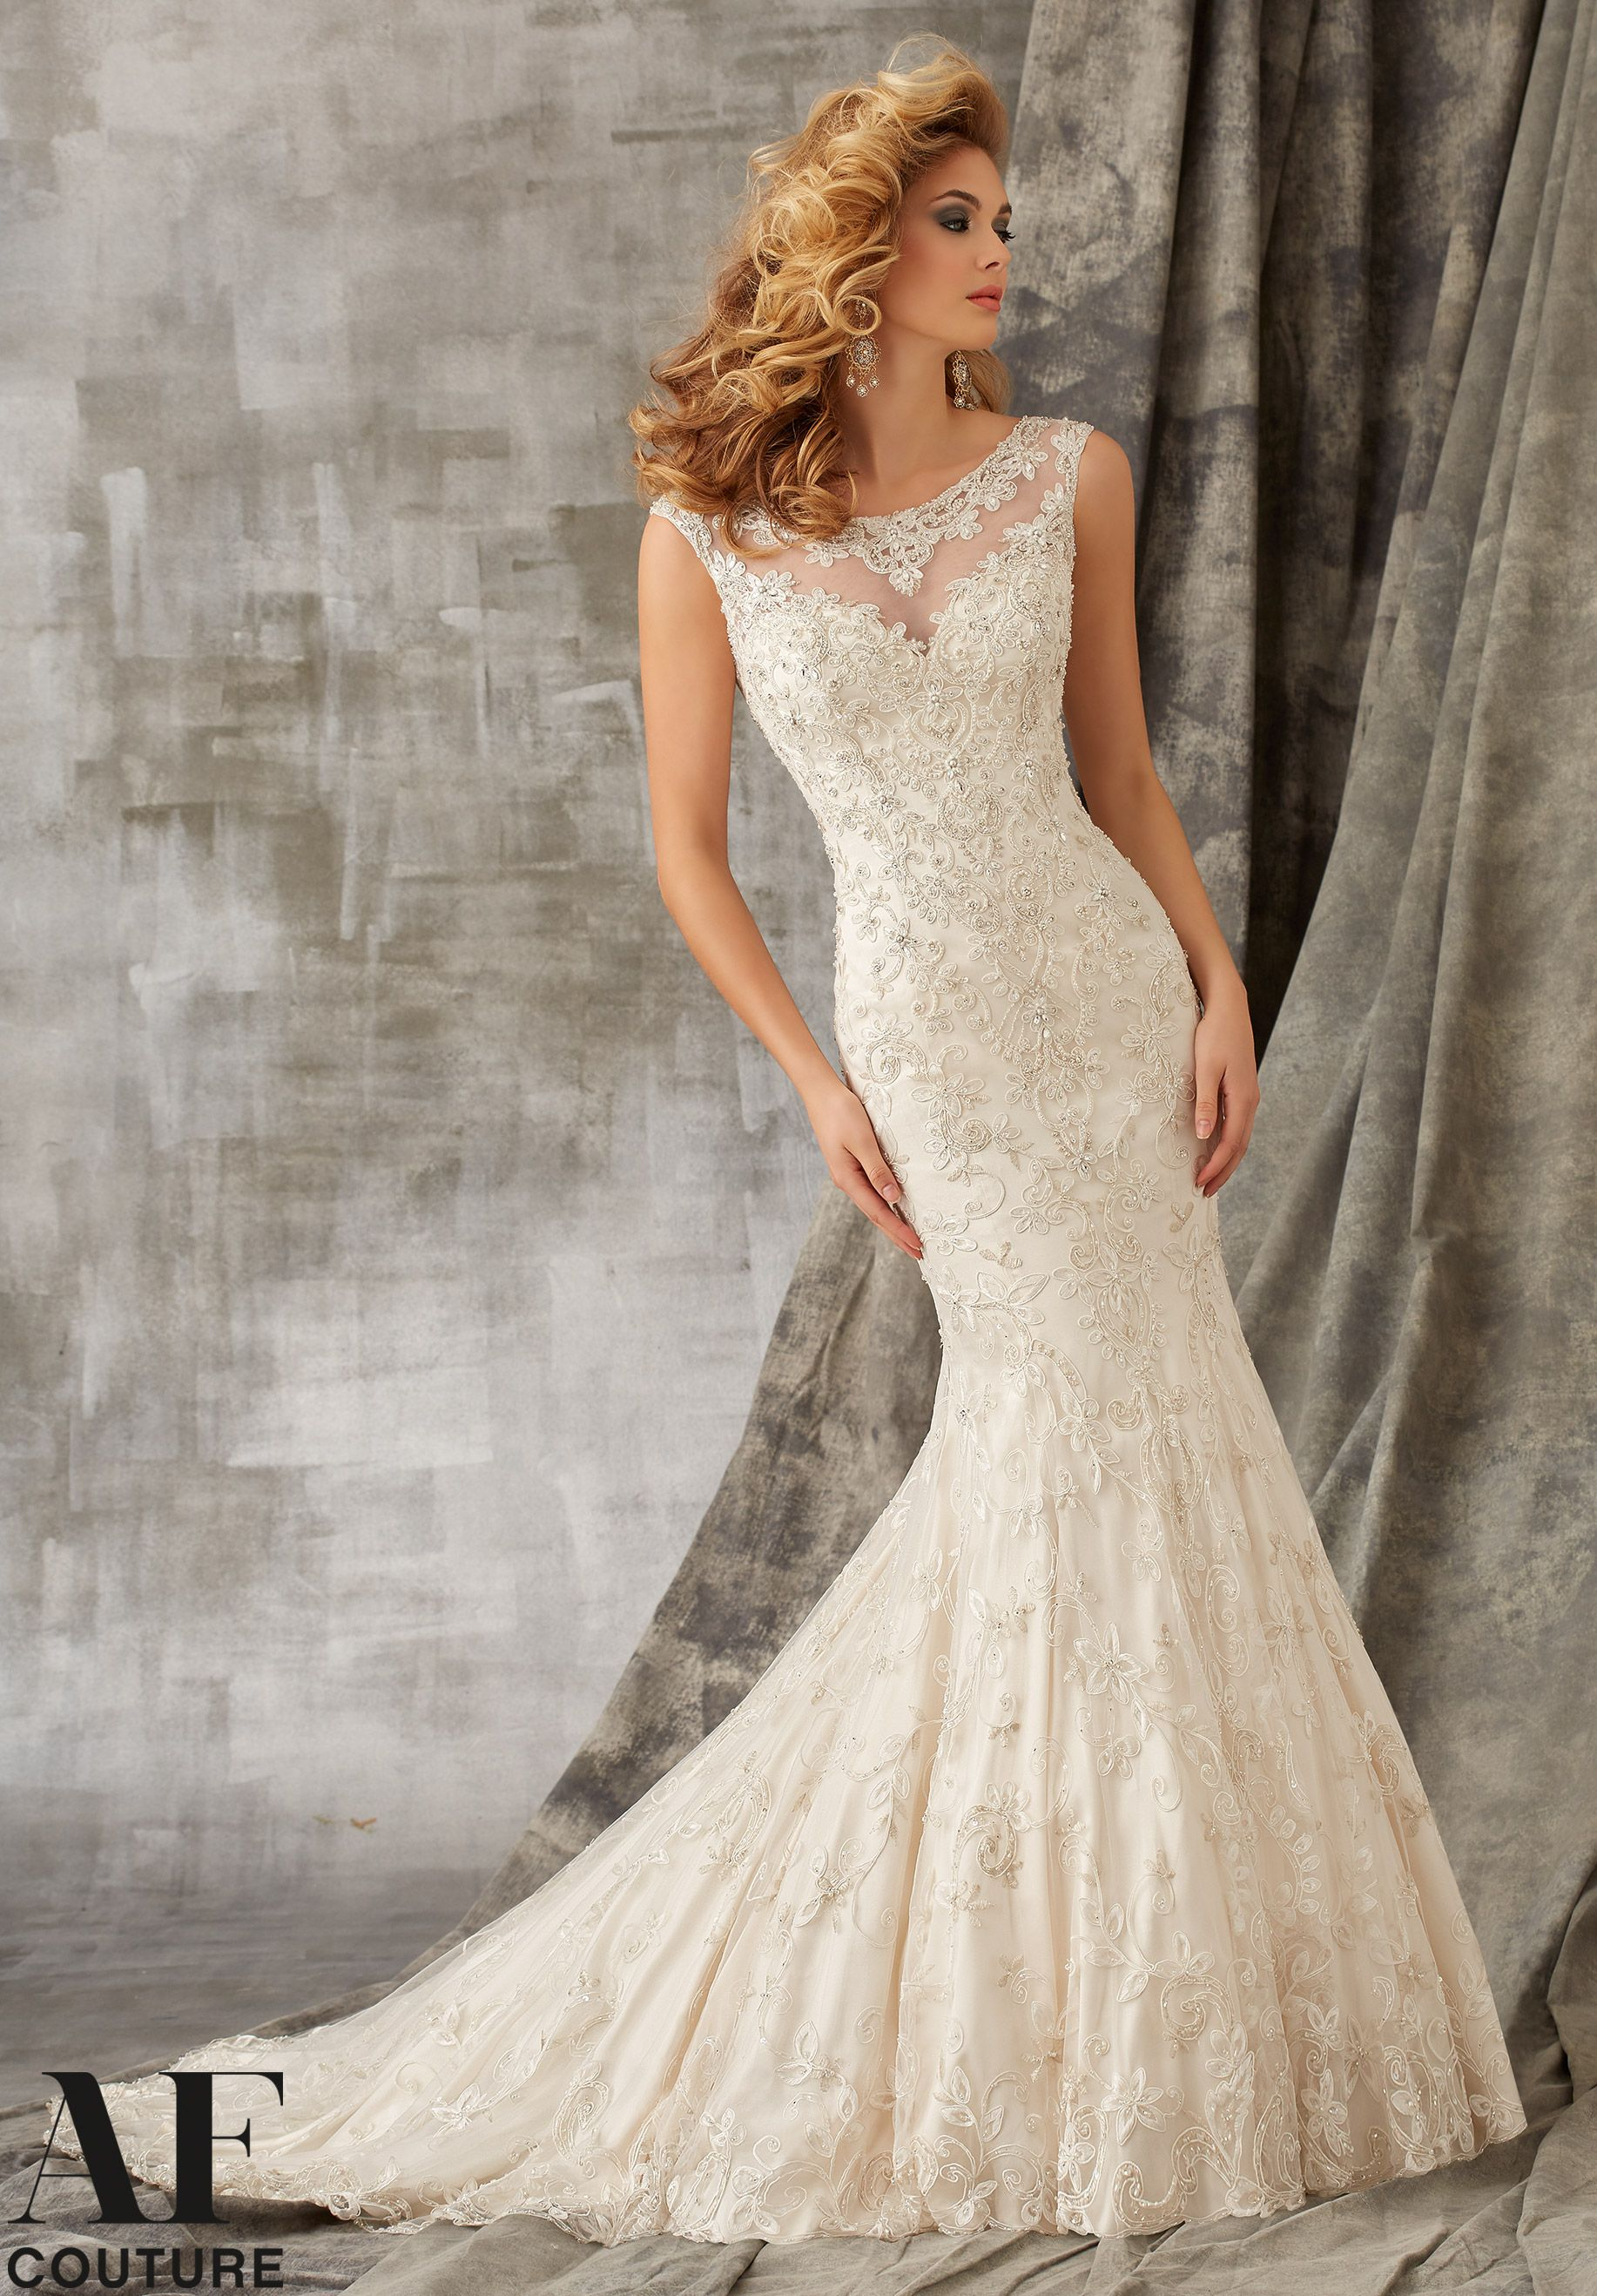 Wedding gowns dresses style cordinelli embroidery with